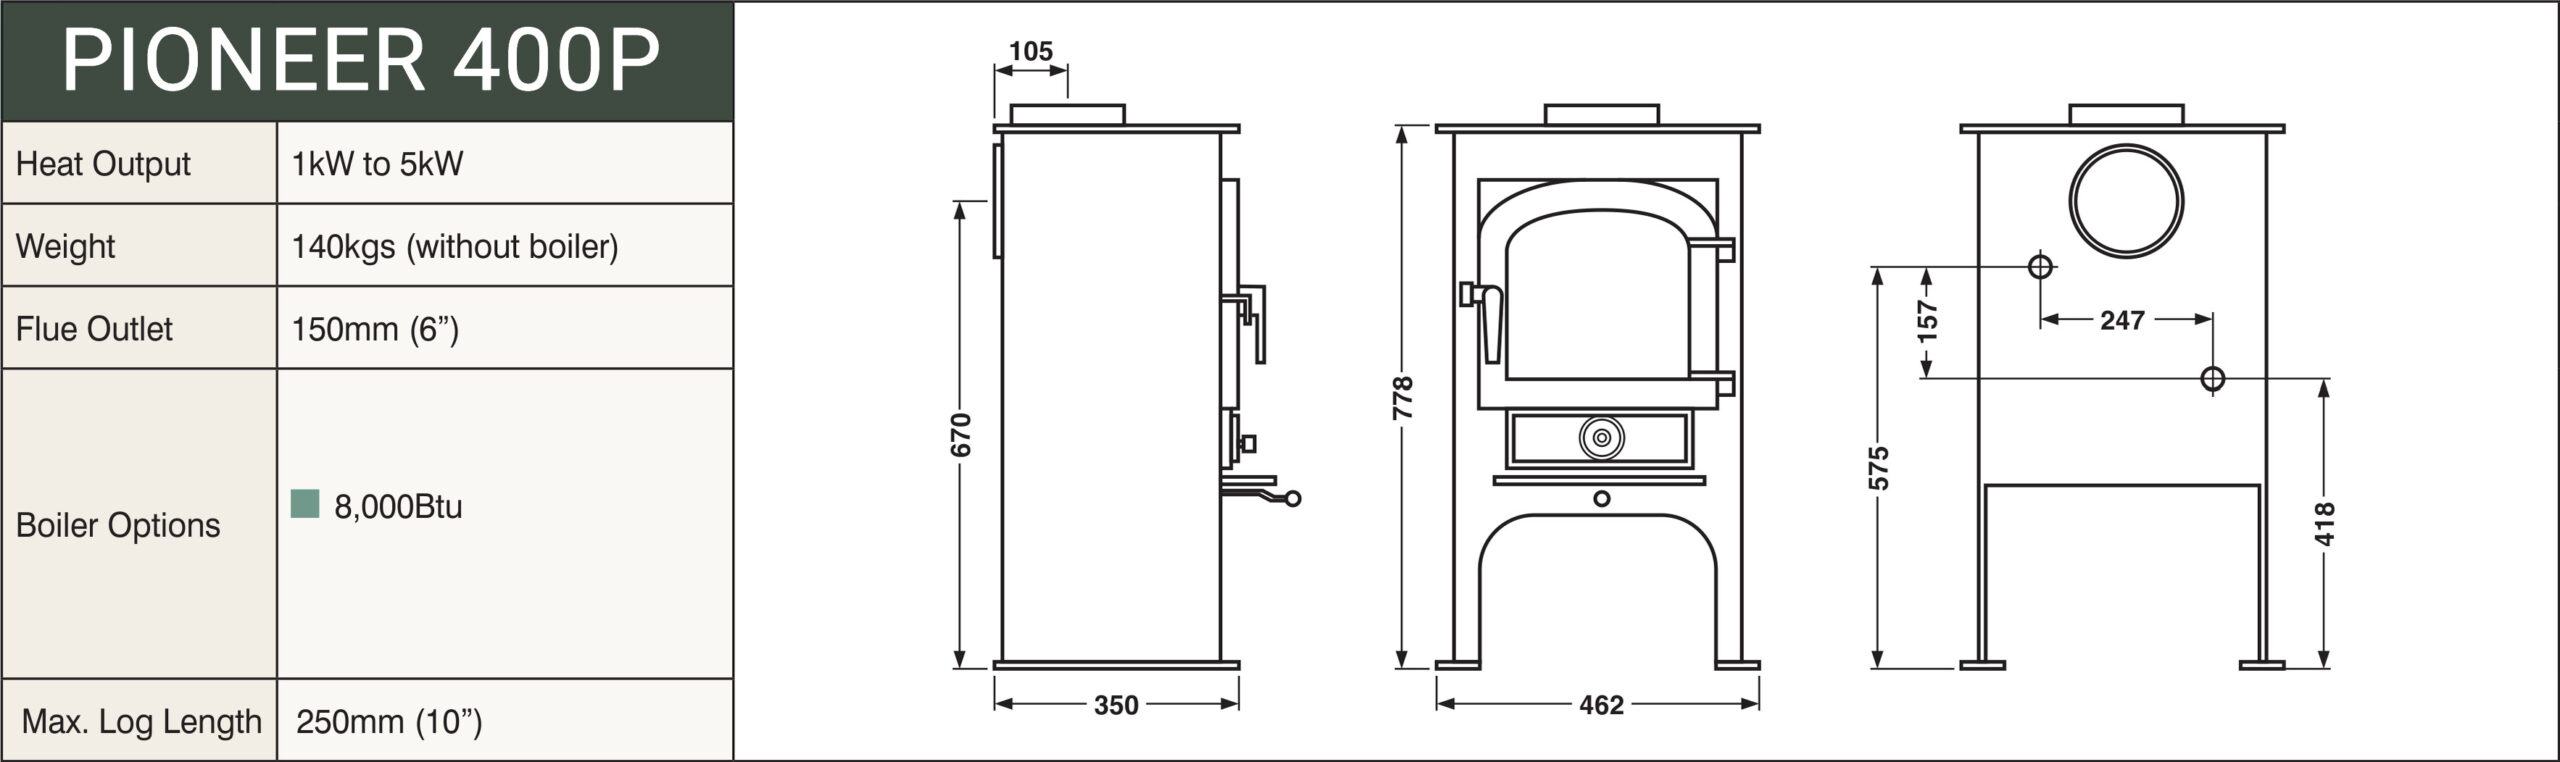 Clearview Pioneer 400P Woodburning Stove - Clearview Stoves Size schematic